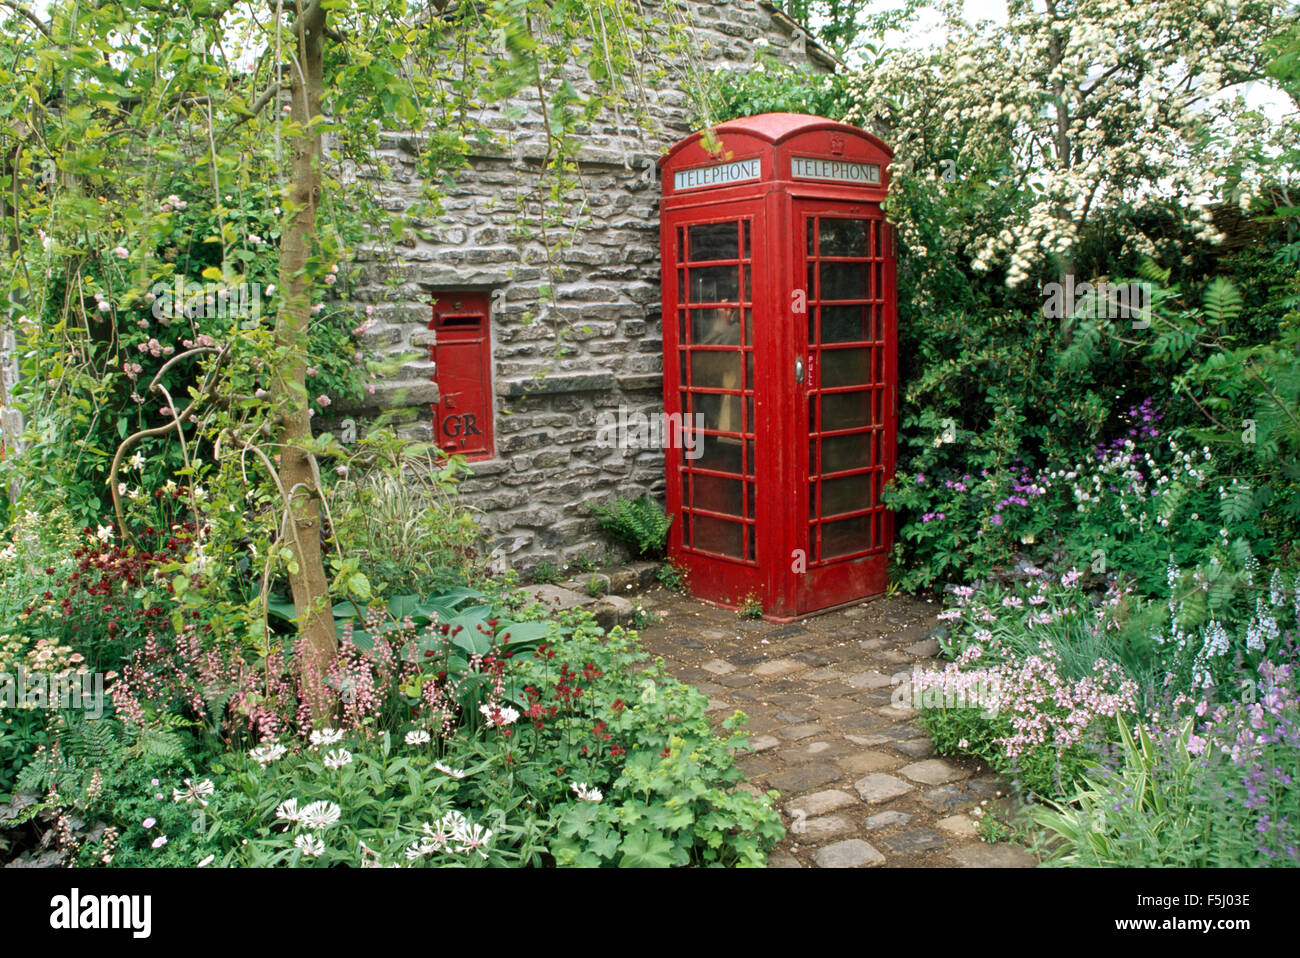 Vintage post box on stone wall in garden with a red vintage telephone box Stock Photo